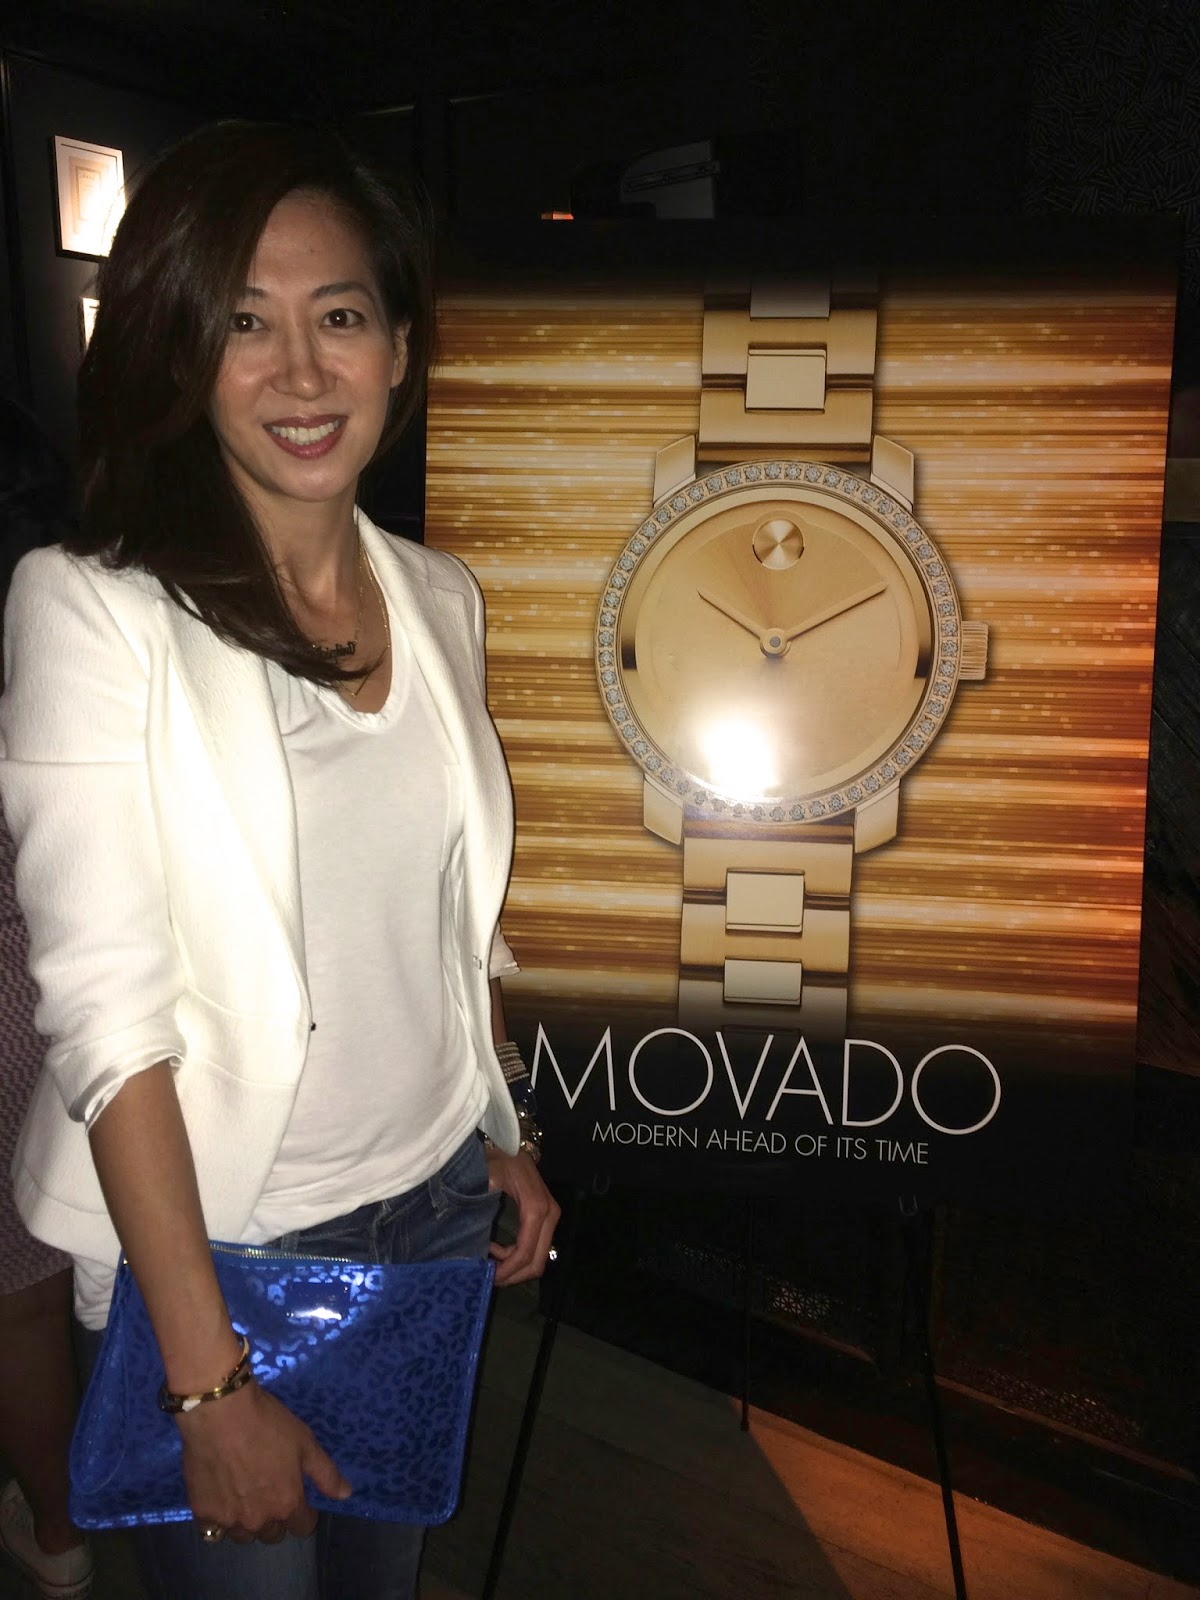 OOTD next to Movado signage